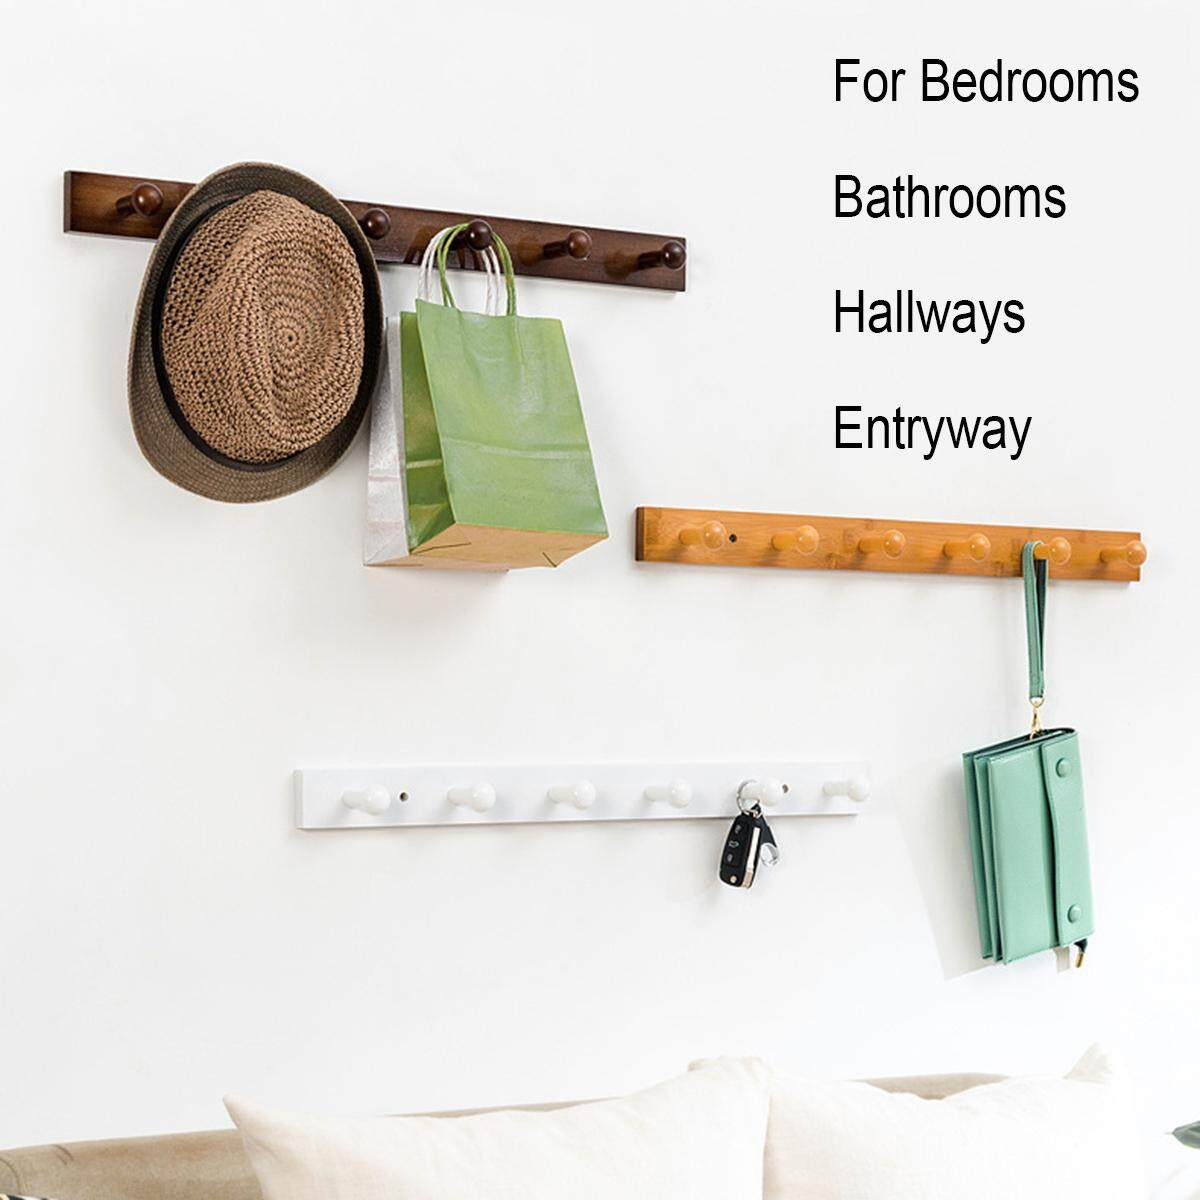 Mu Ma Ren Wall Mounted Coat Rack/Rail Bamboo Wood Hook for Coat Clothes Hats Key Towels Hanger (3 Colors) Renting/Decoration